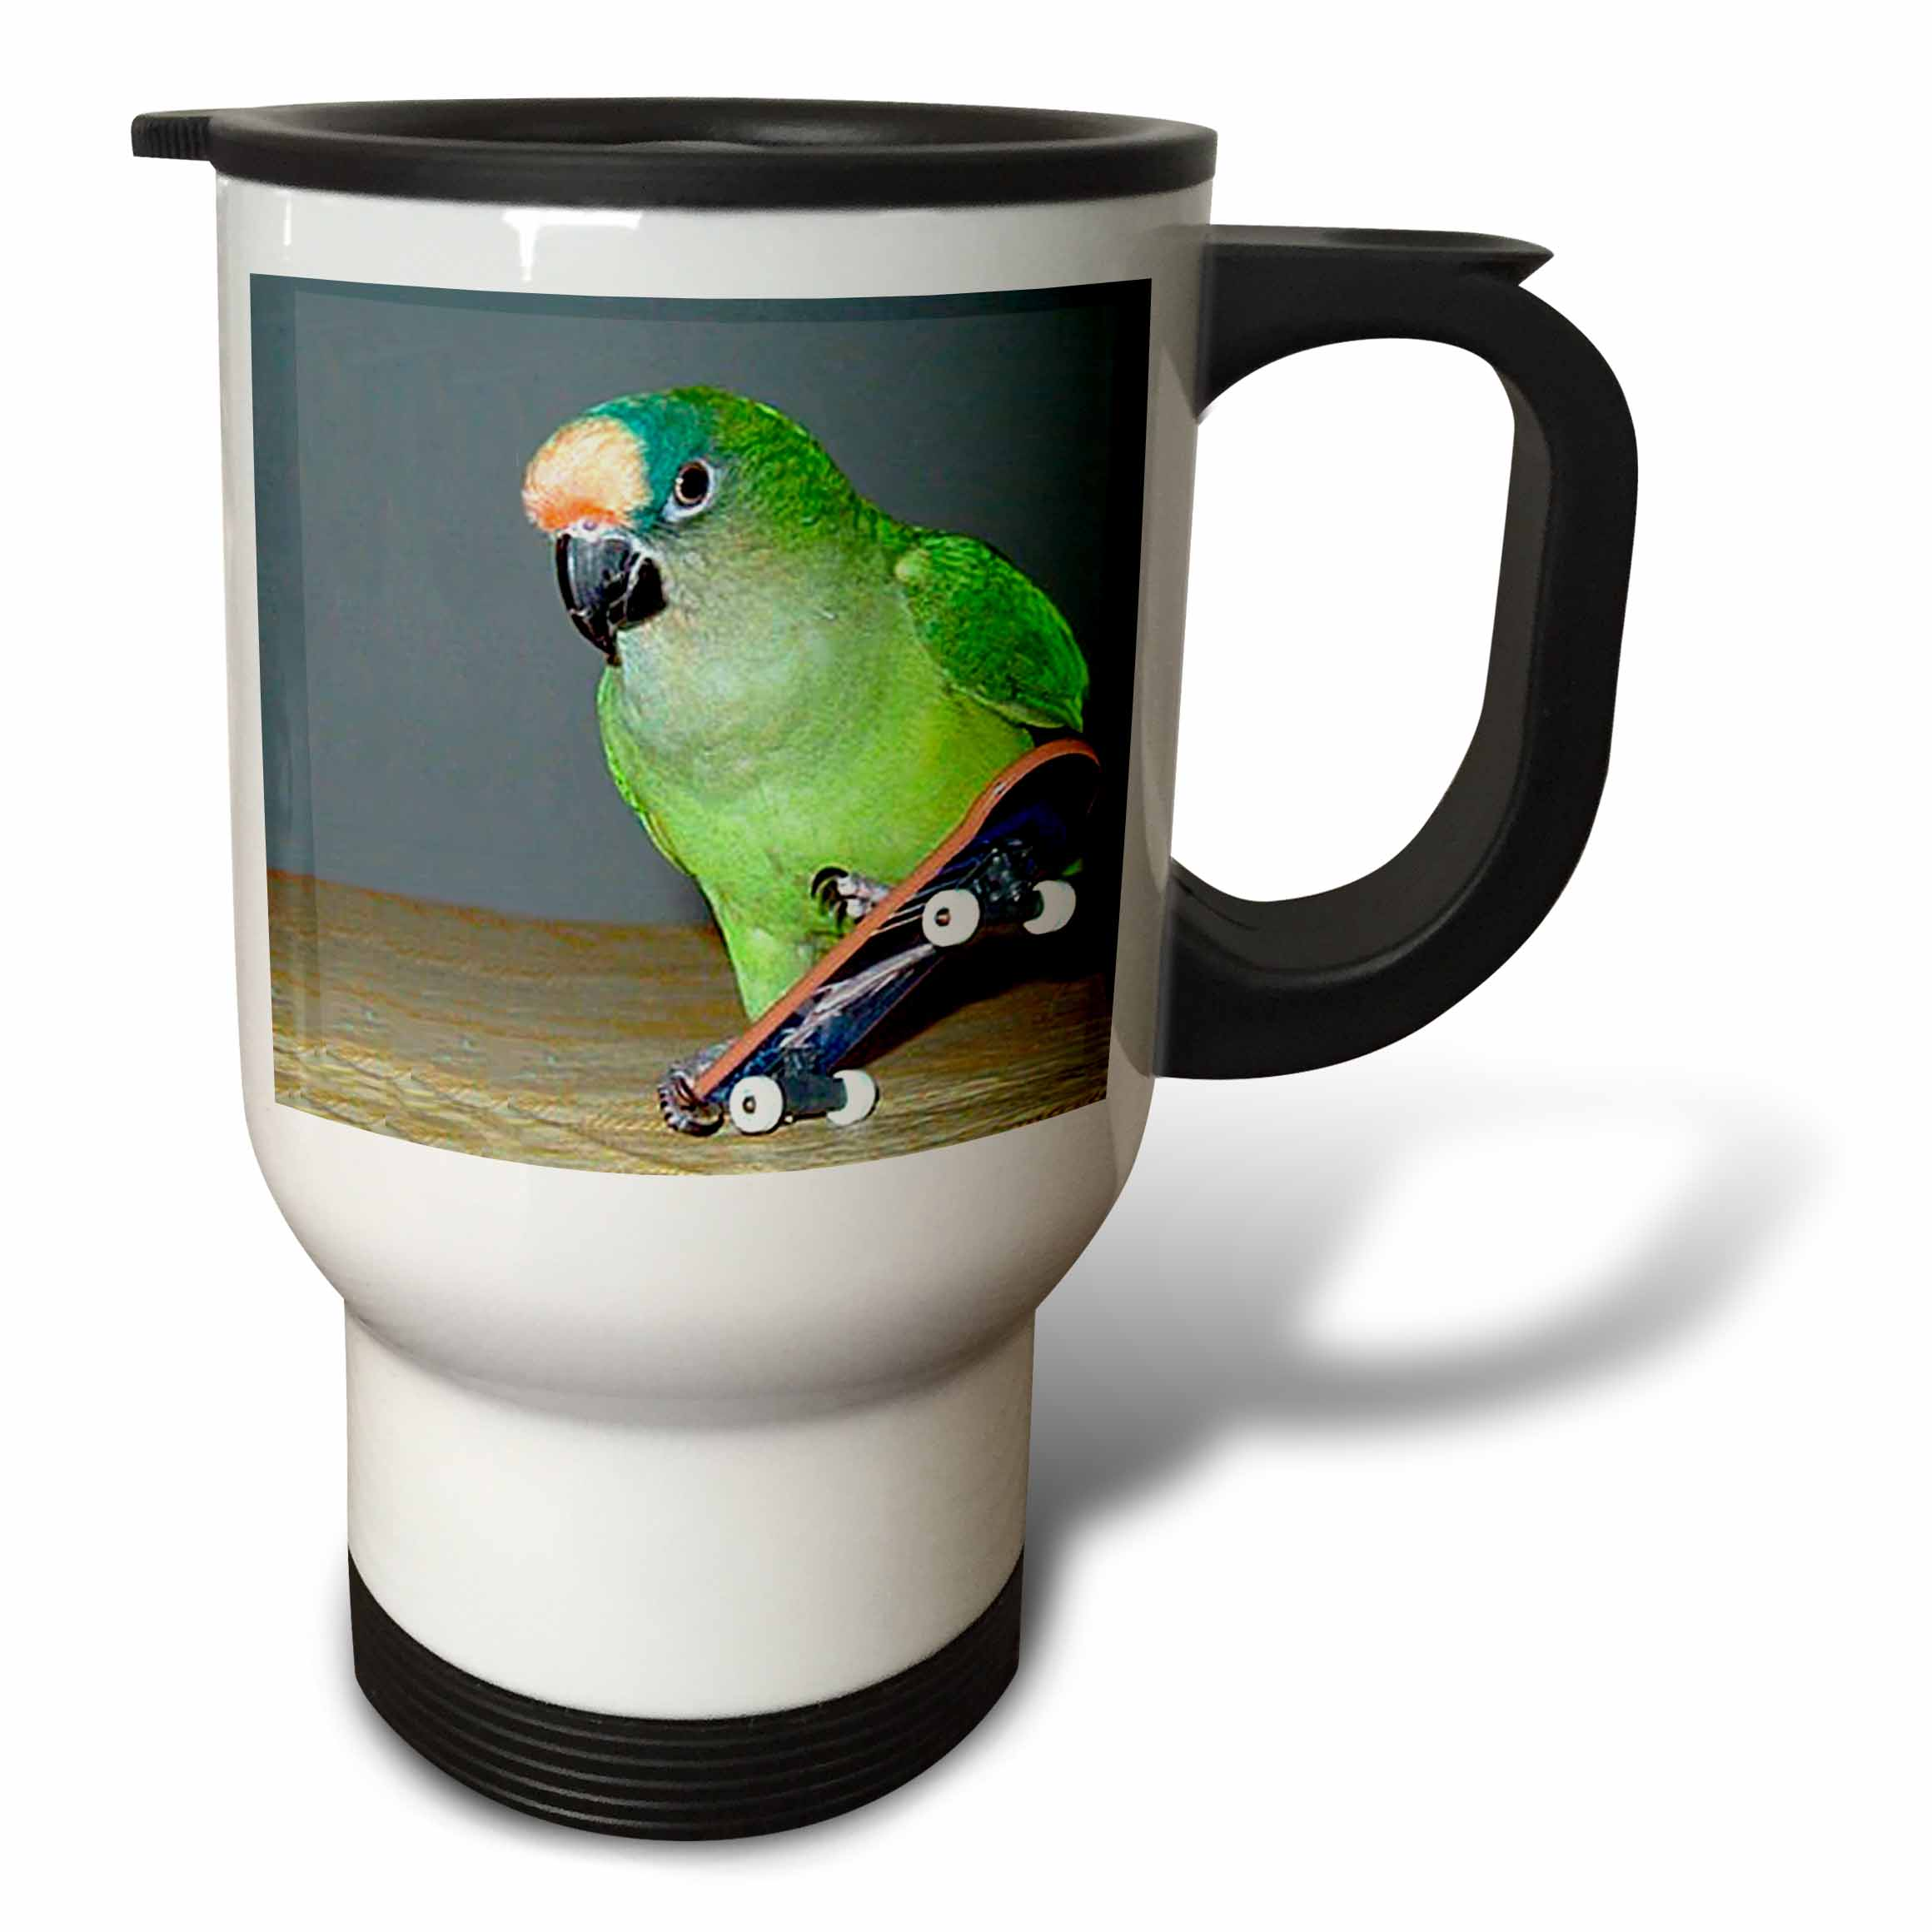 3dRose Skateboard Conure, Travel Mug, 14oz, Stainless Steel by 3dRose